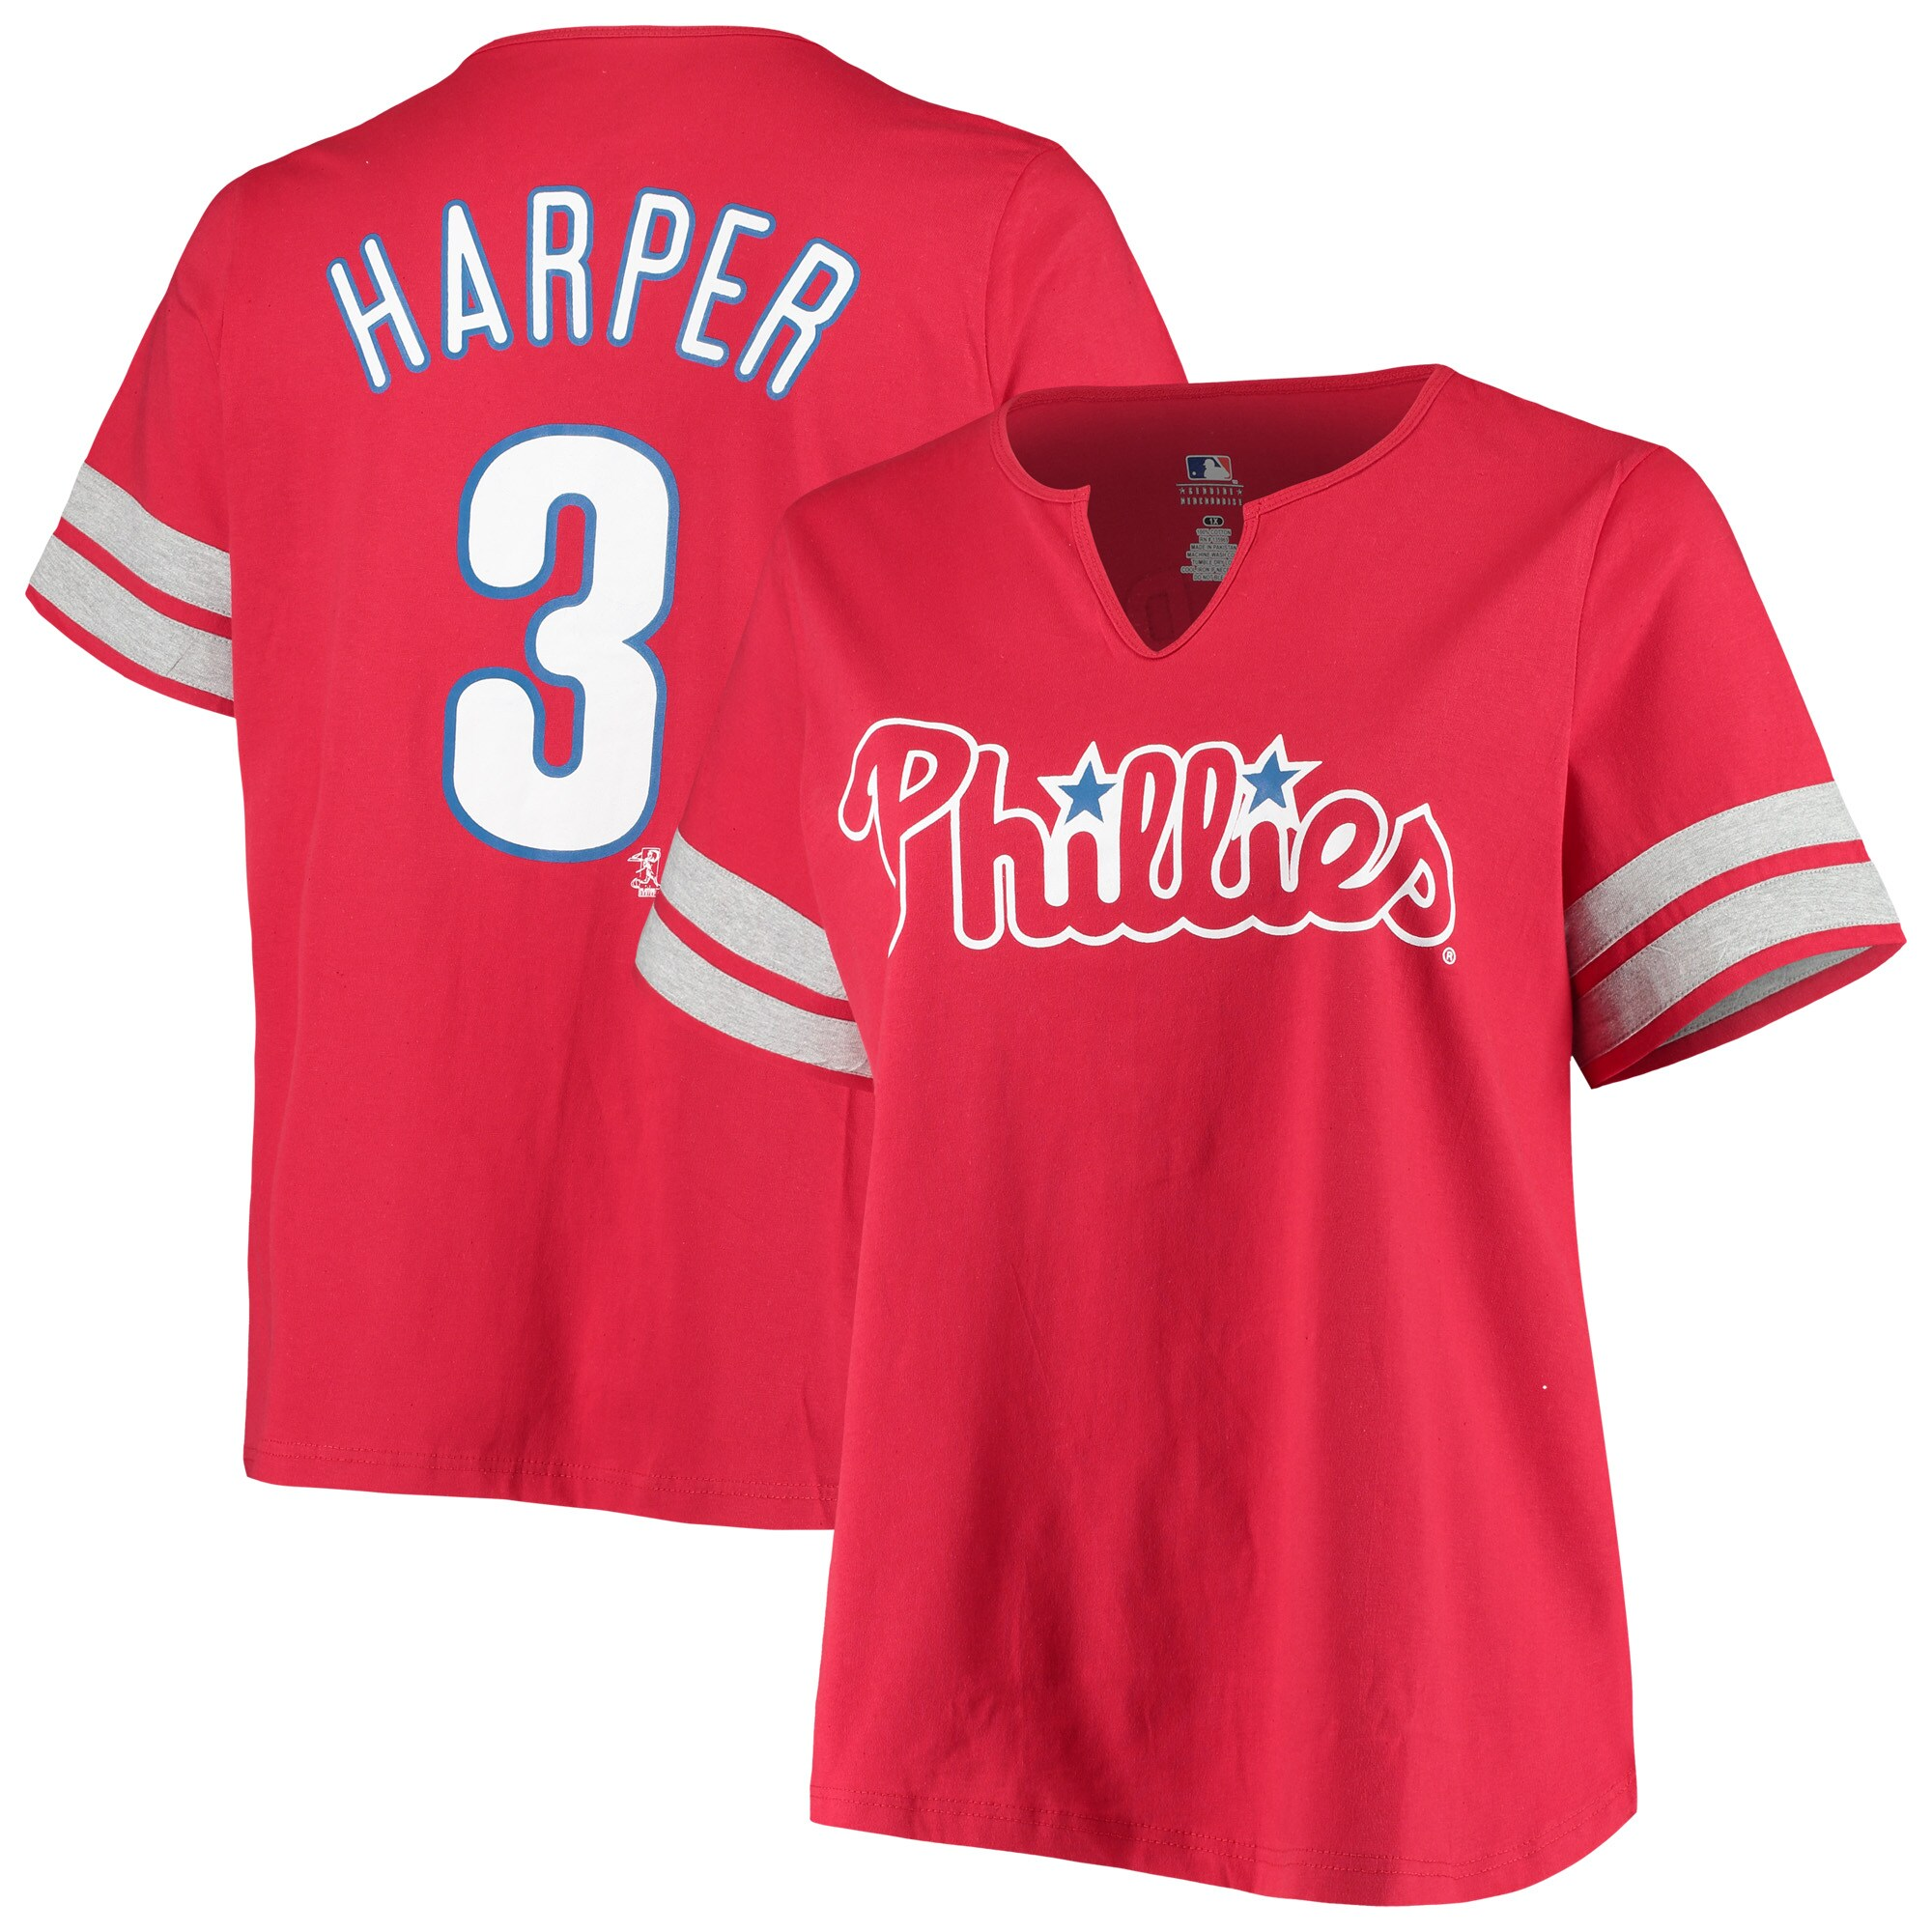 Bryce Harper Philadelphia Phillies Women's Plus Size Notch Neck Name & Number T-Shirt - Red